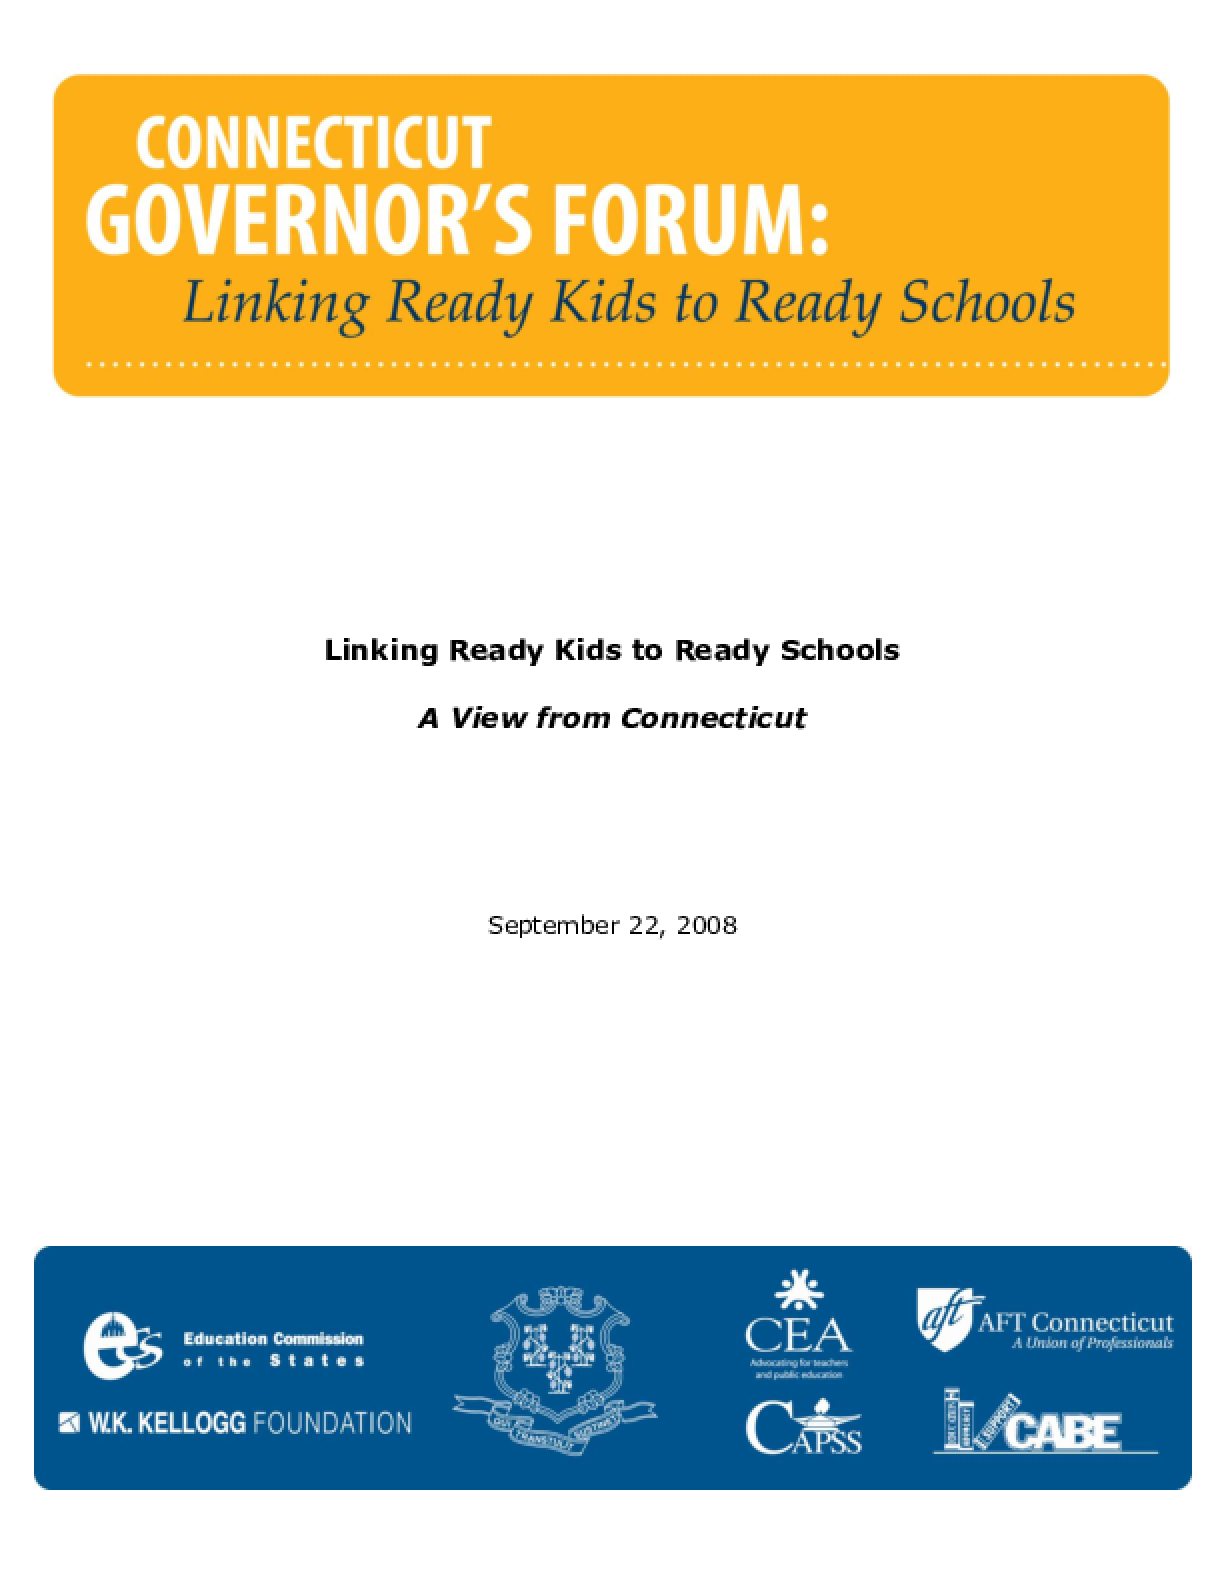 Linking Ready Kids to Ready Schools: A View from Connecticut